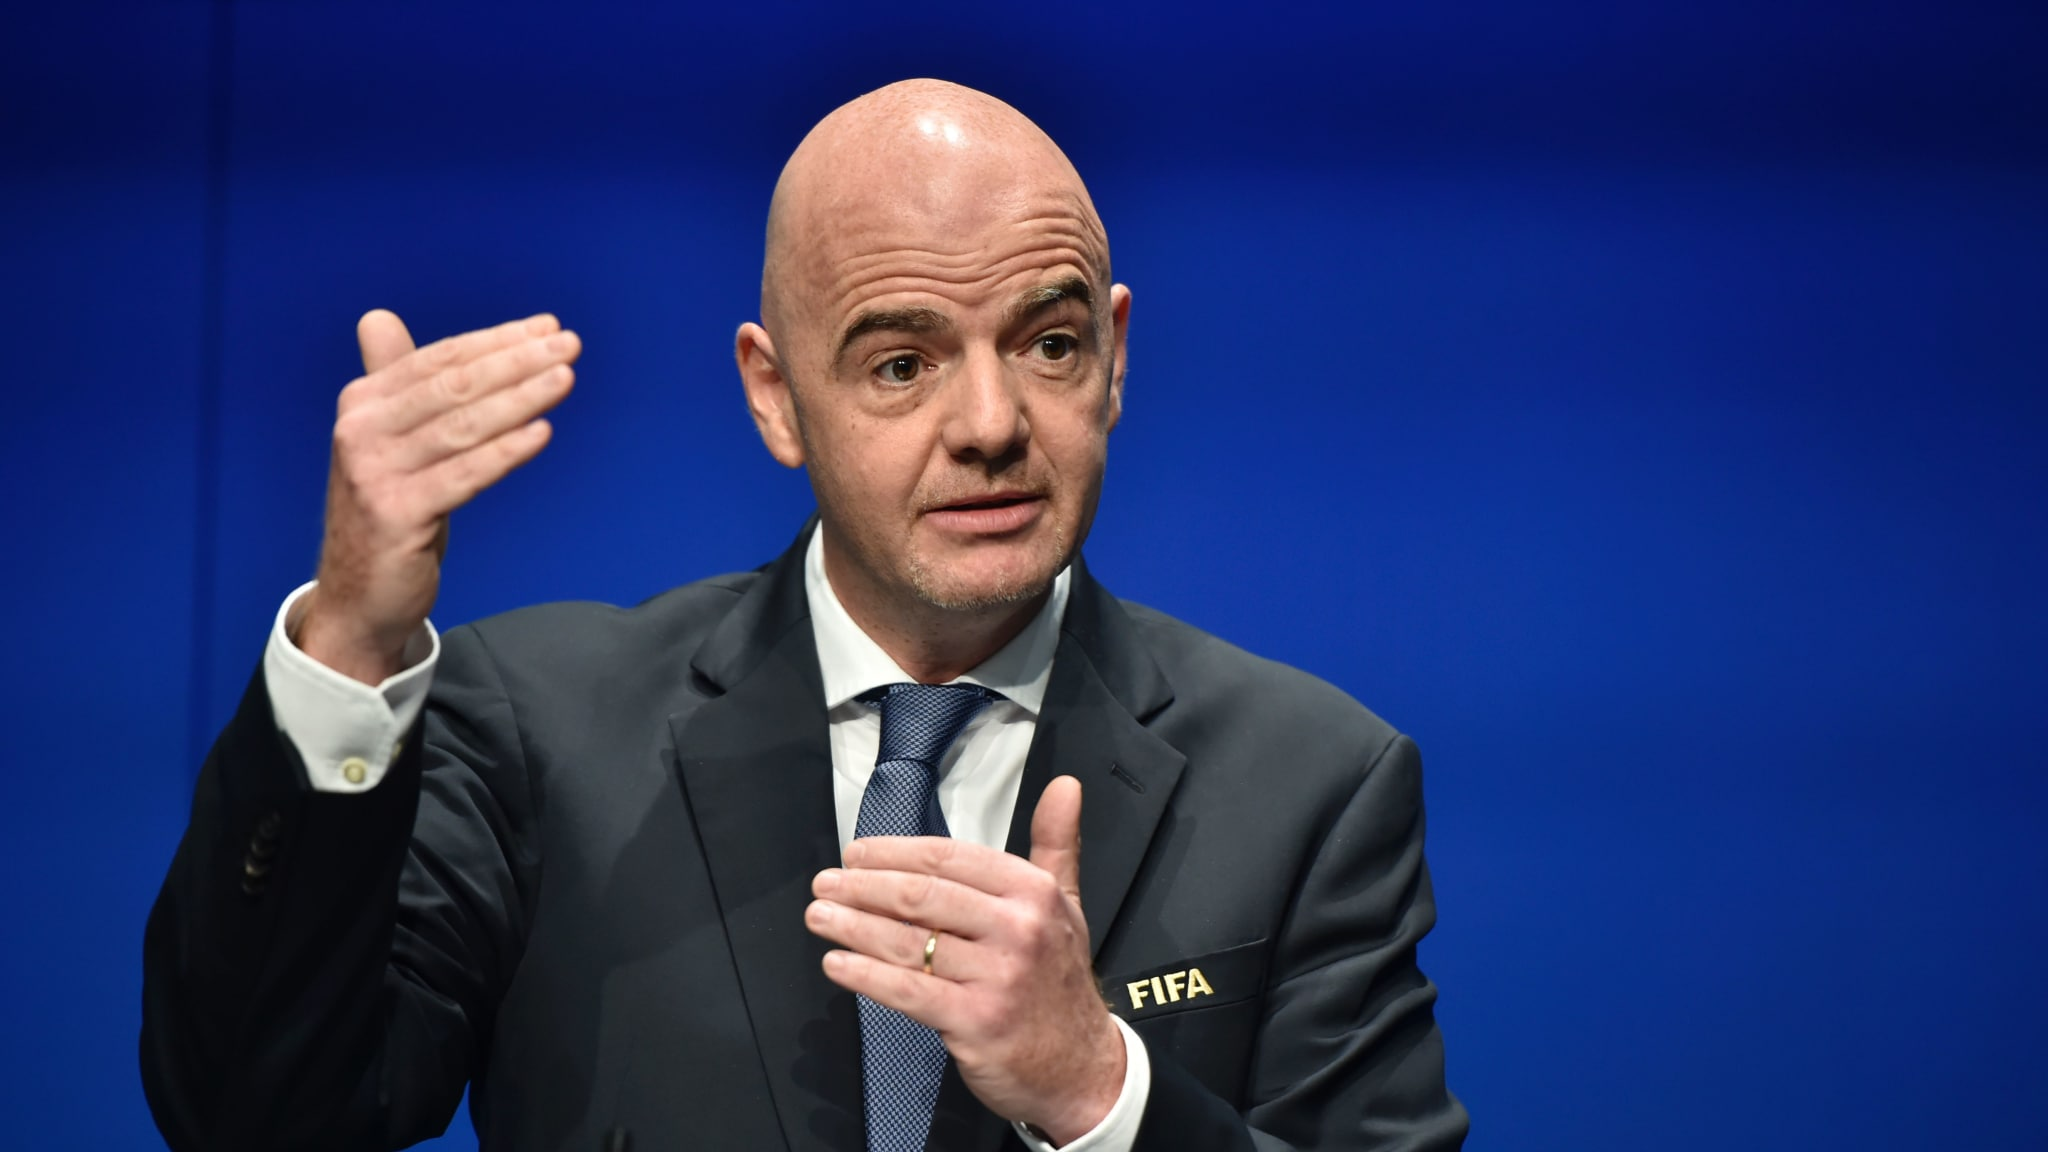 FIFA Advises CAF to Hold AFCON Every 4 Years for Impact - Newslibre